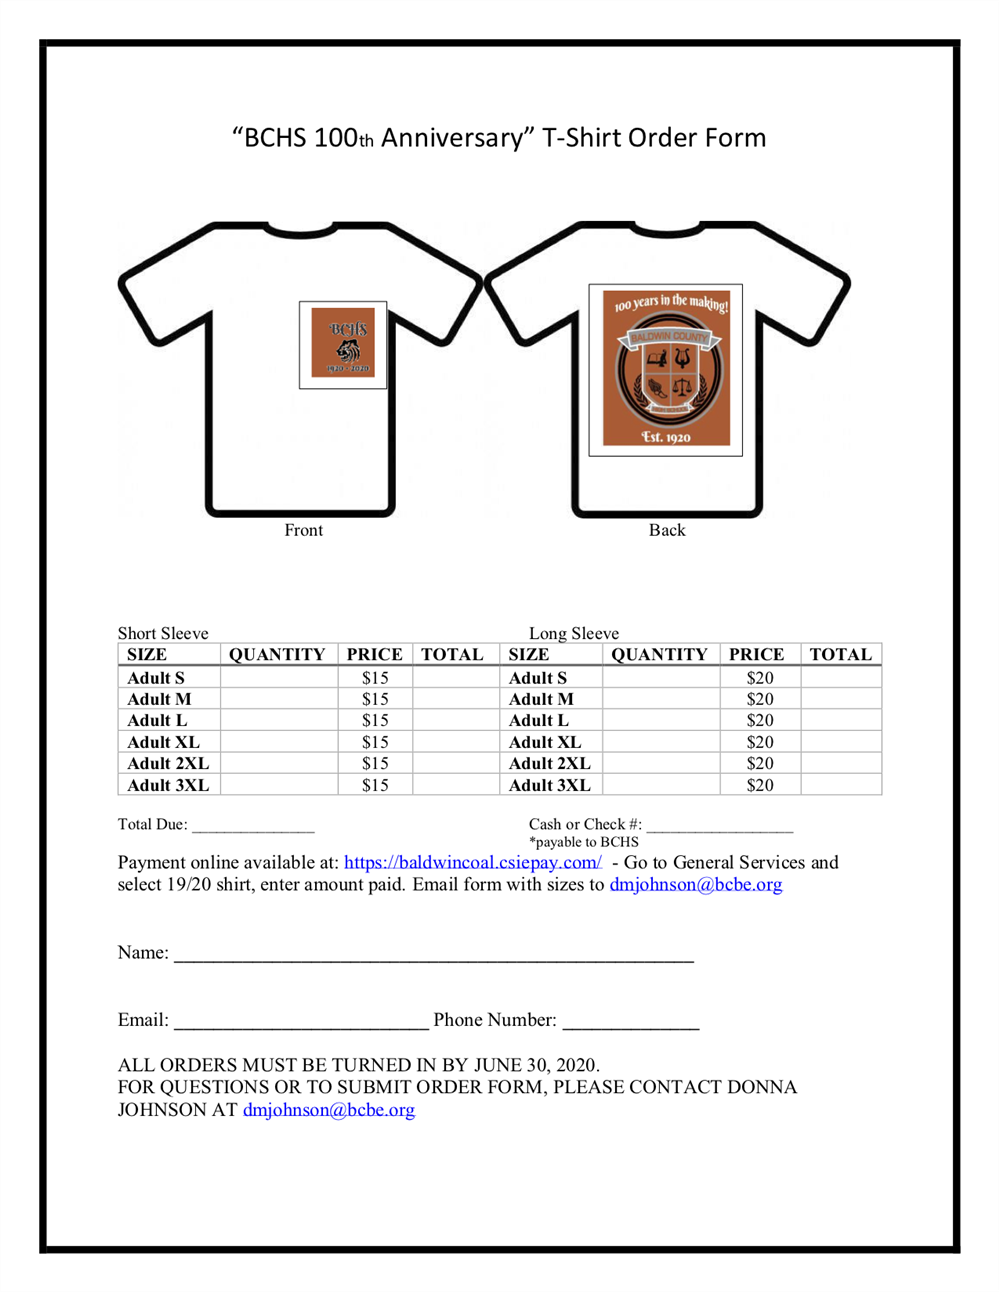 BCHS 100th Anniversary T-Shirts on sale!